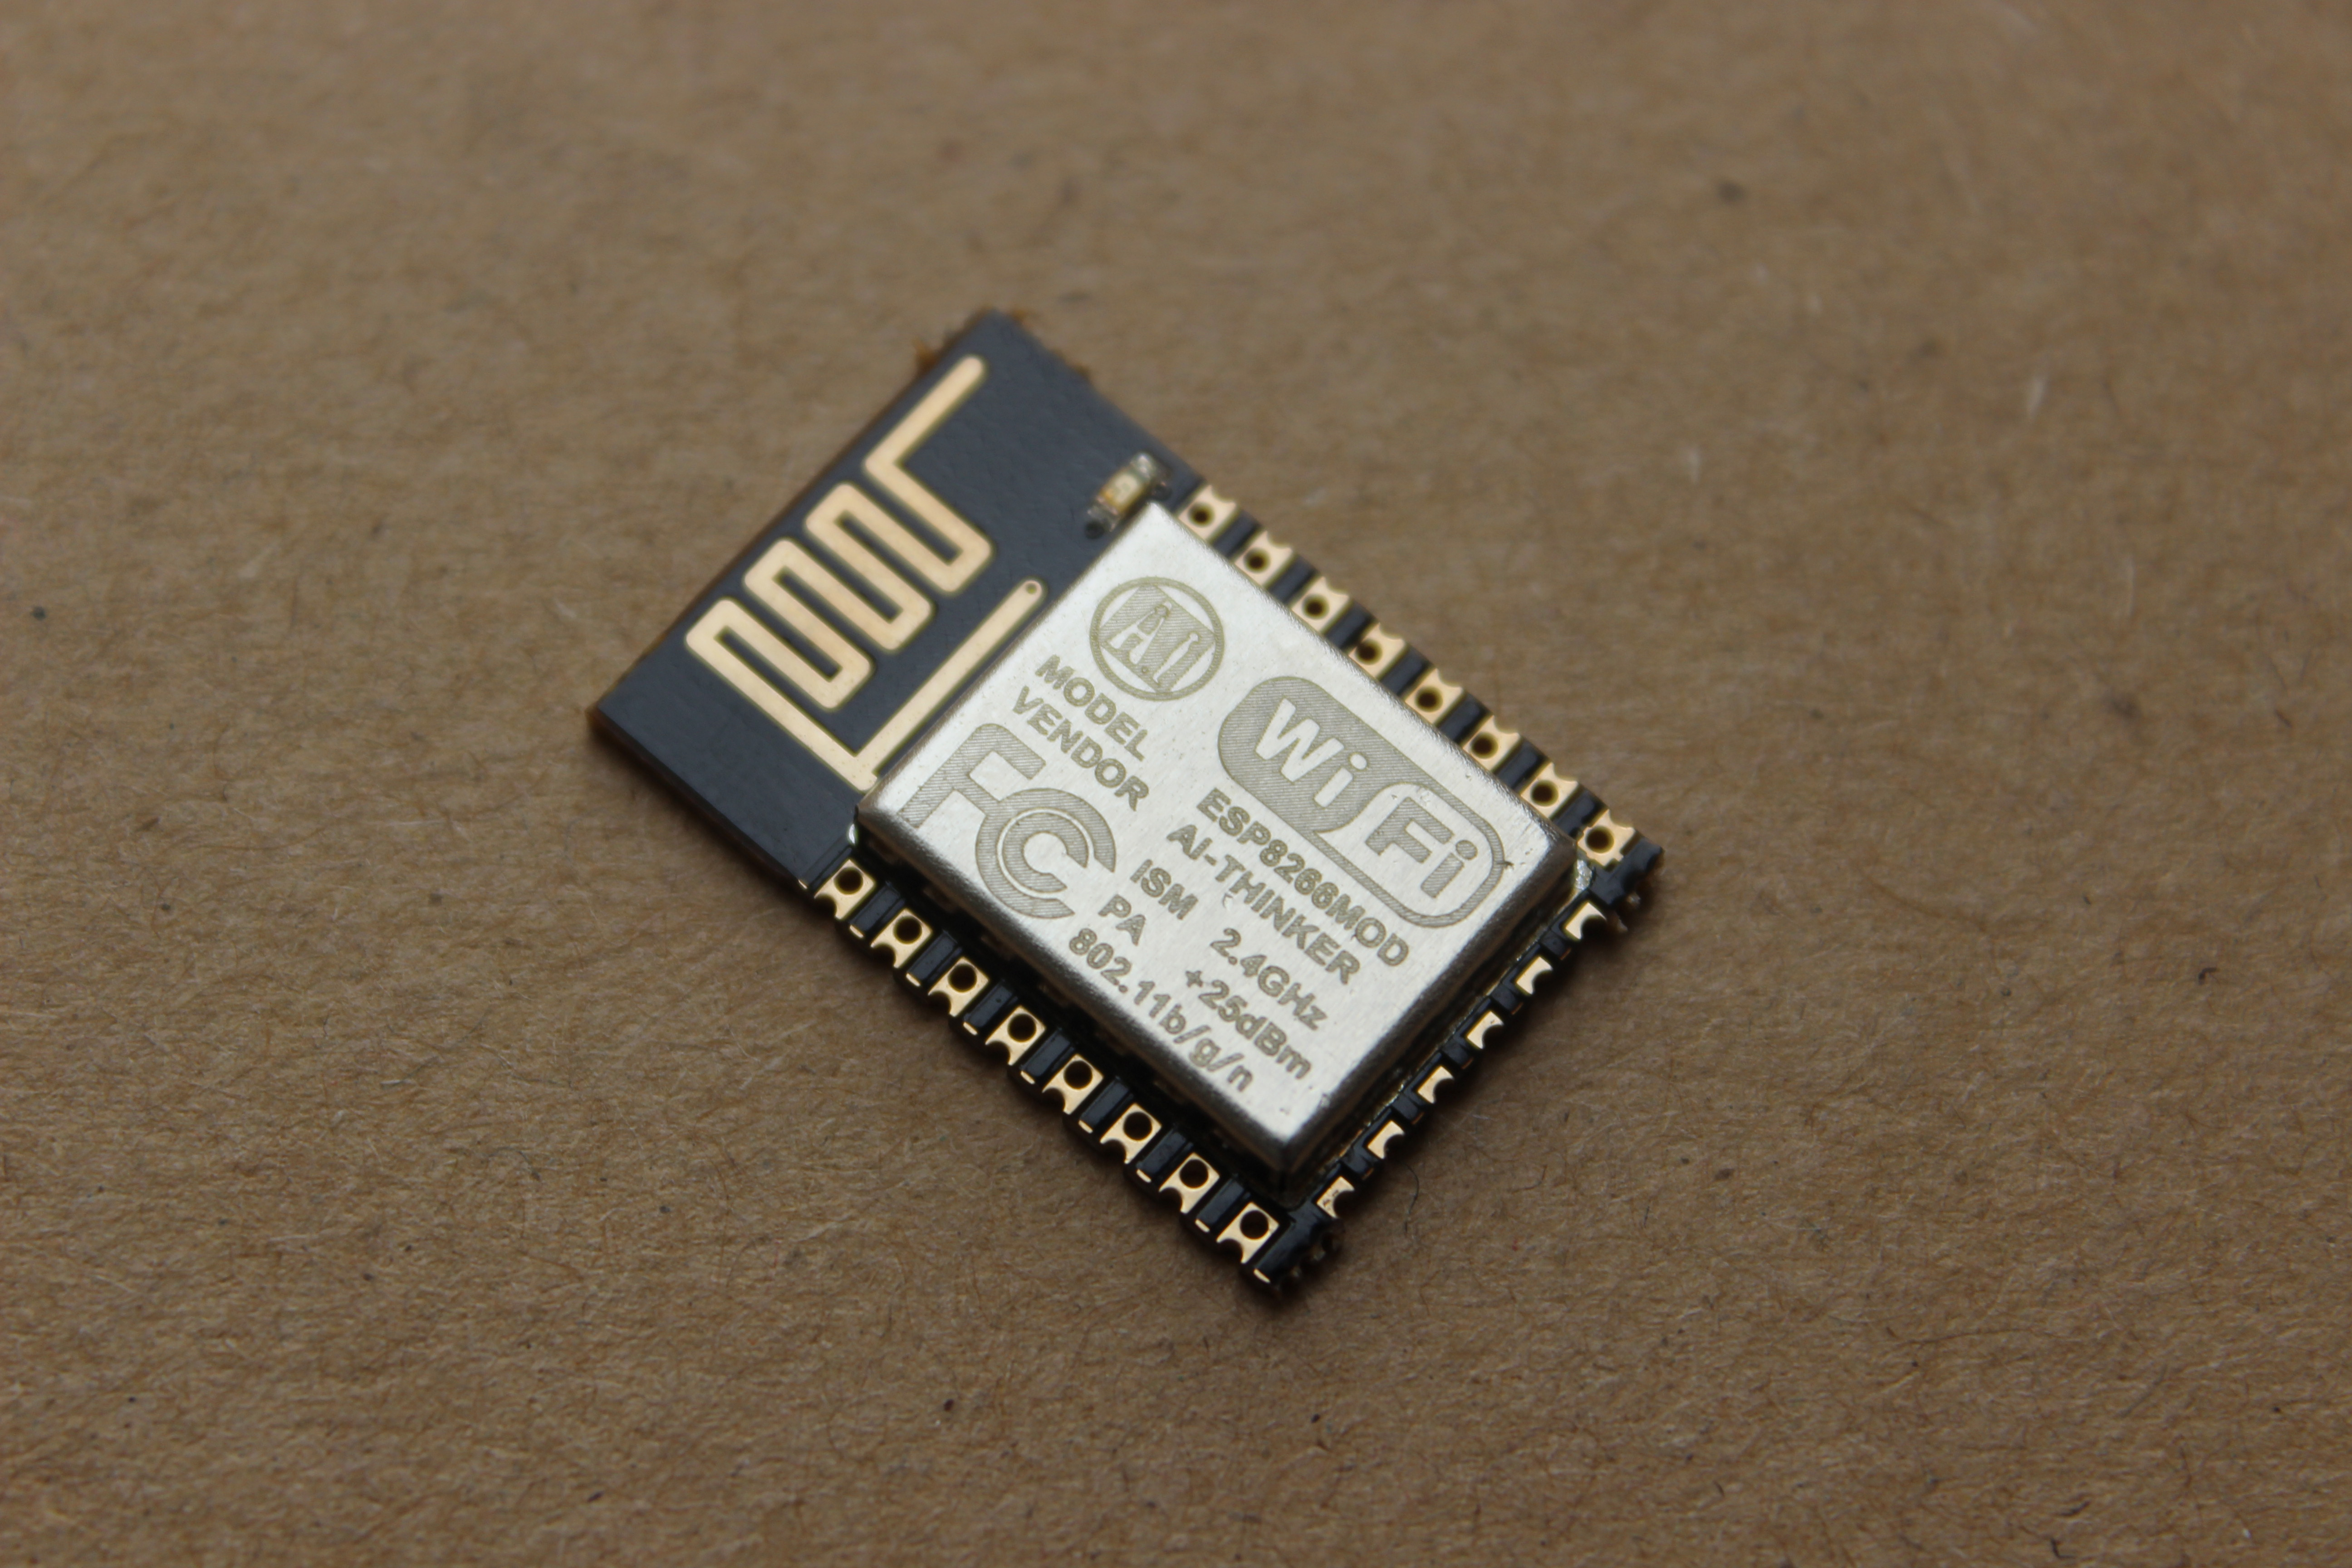 GPIO Pin BTN LED naming conventions specific to ESP8266